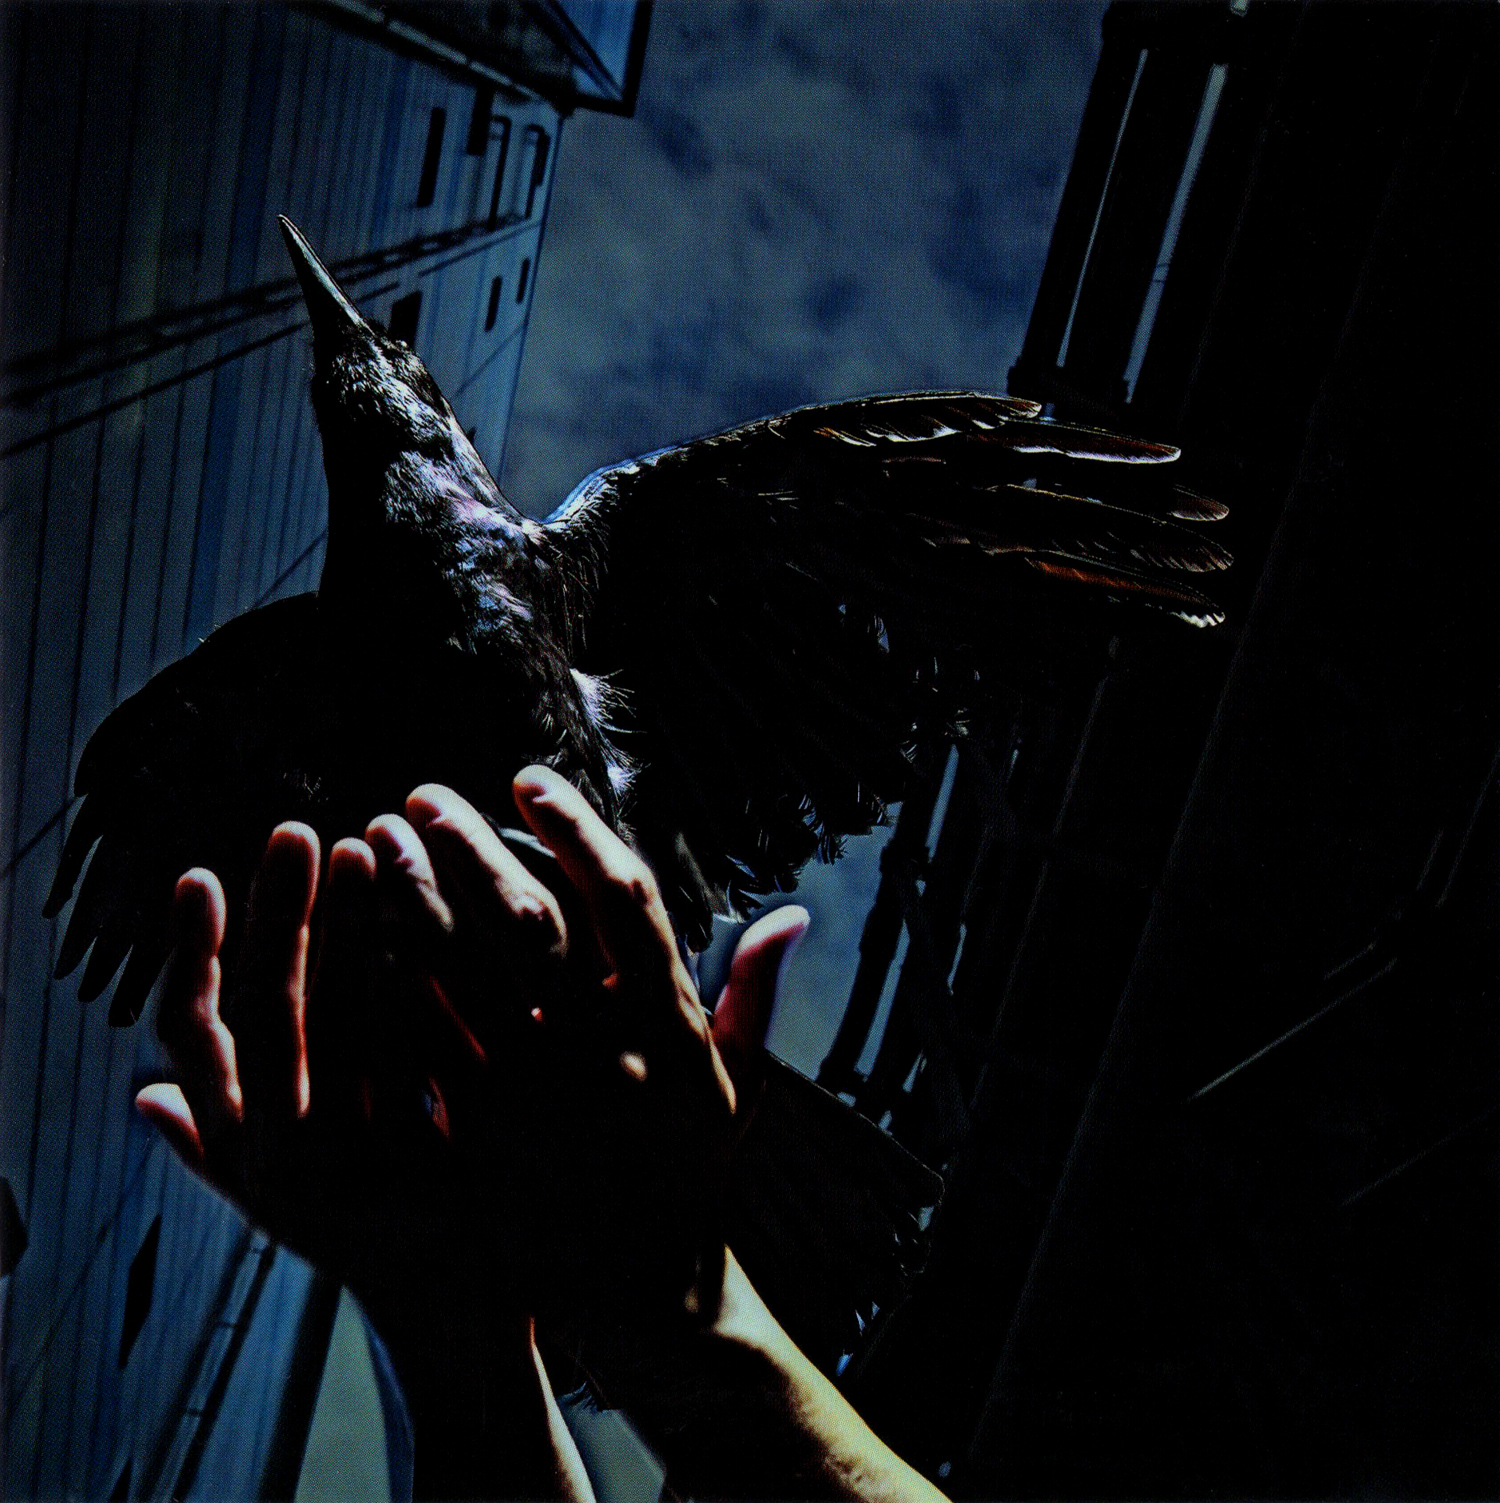 9mm parabellum bullet『Cold Edge e.p.』の高画質ジャケット画像